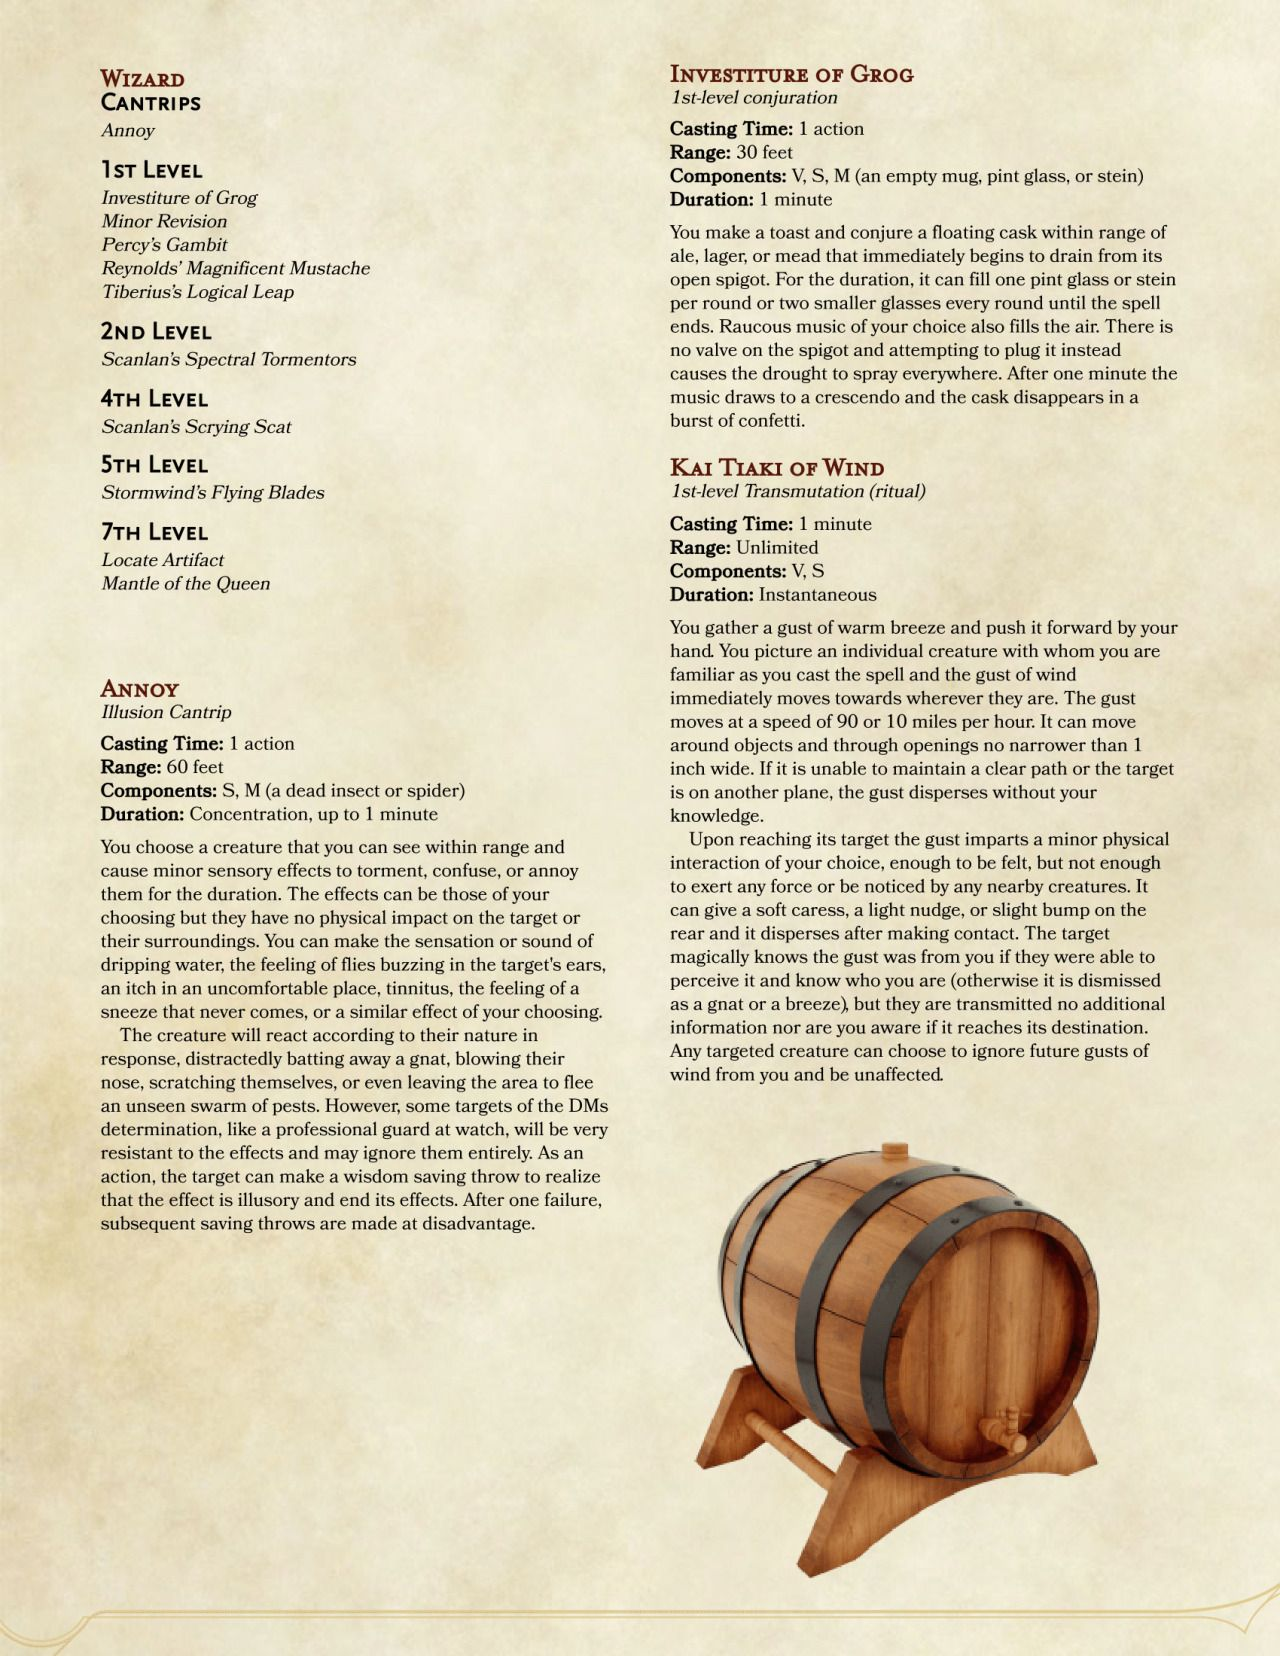 DnD 5e Homebrew critical role spell list 2 | Dungeons & Dragons in